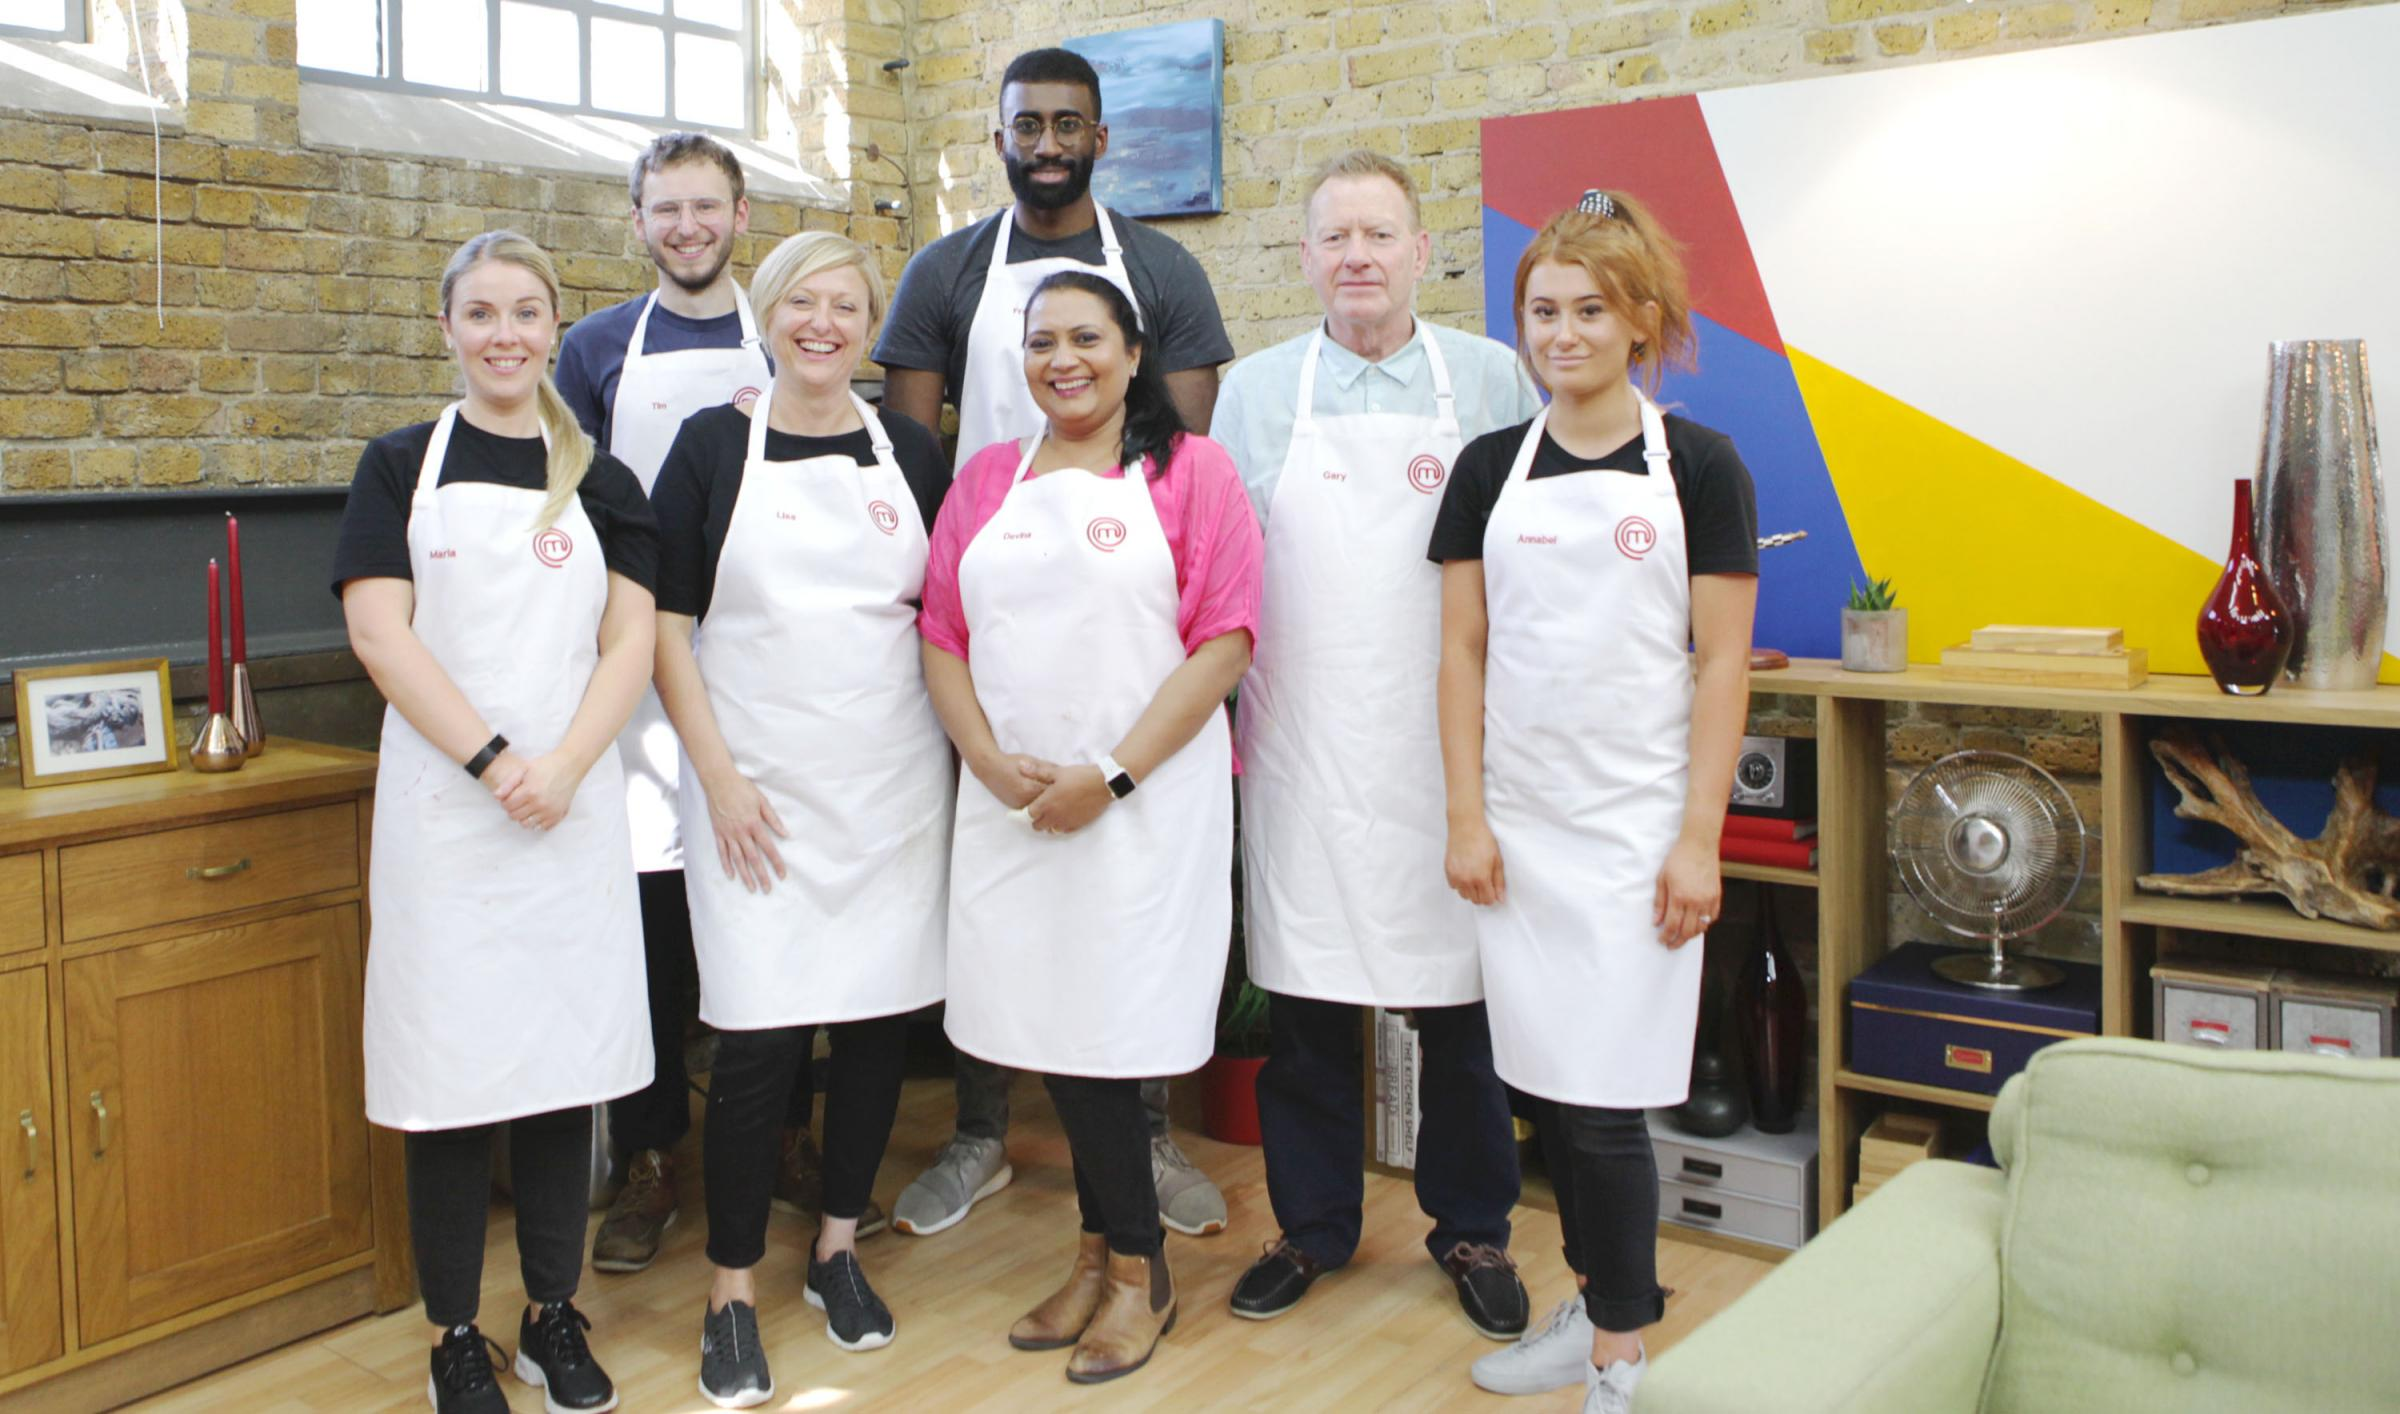 Annabel, far right, and the rest of the Masterchef contestants. Picture: BBC